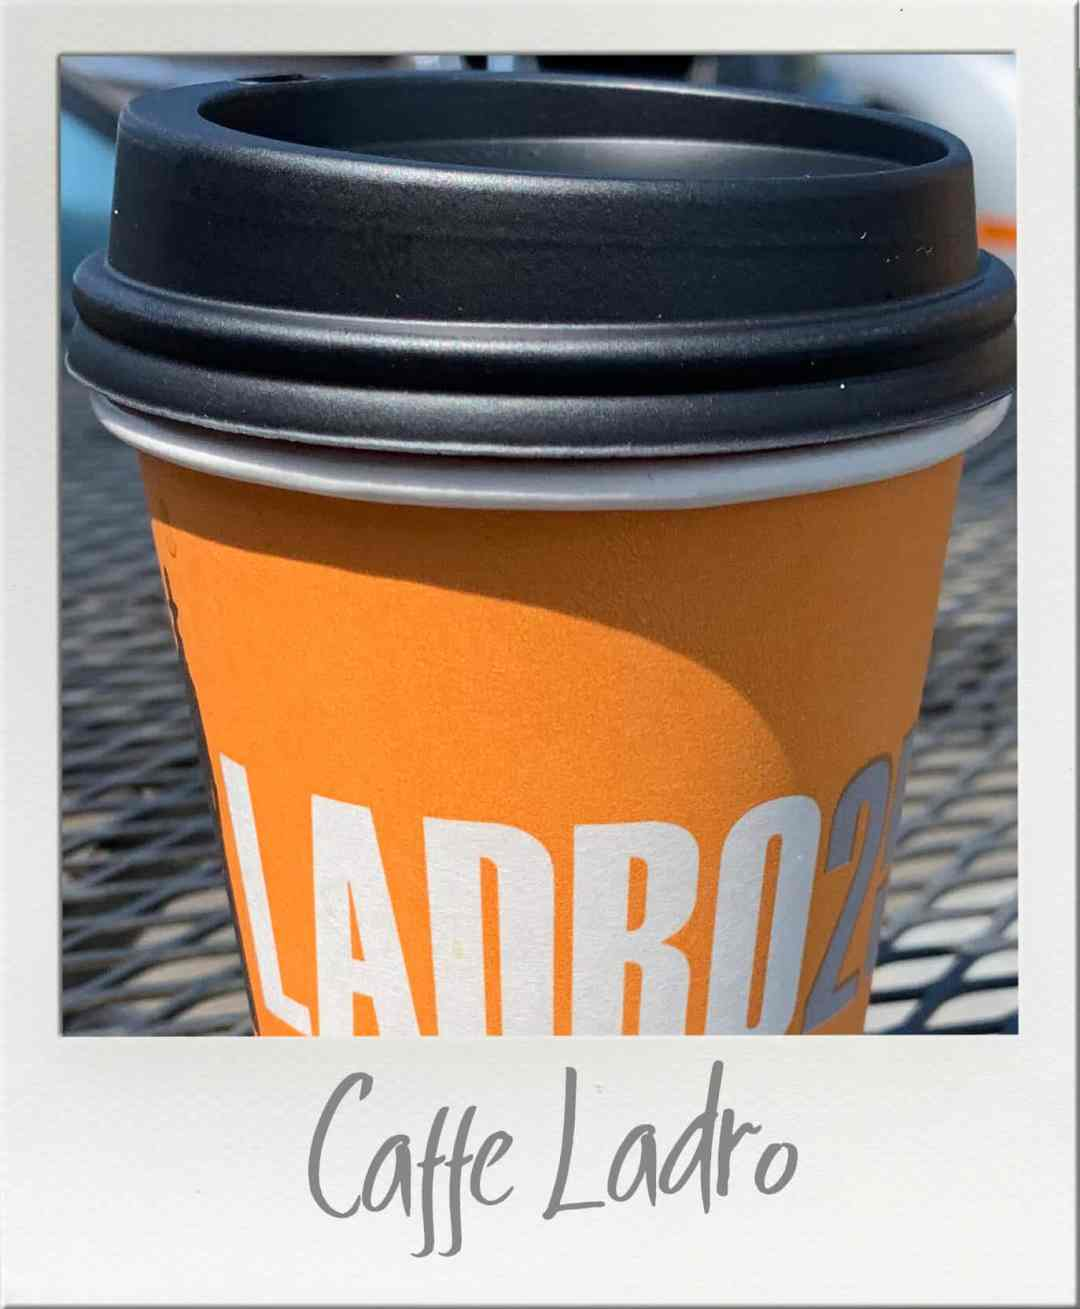 Caffe Ladro Coffee in Paper Cup